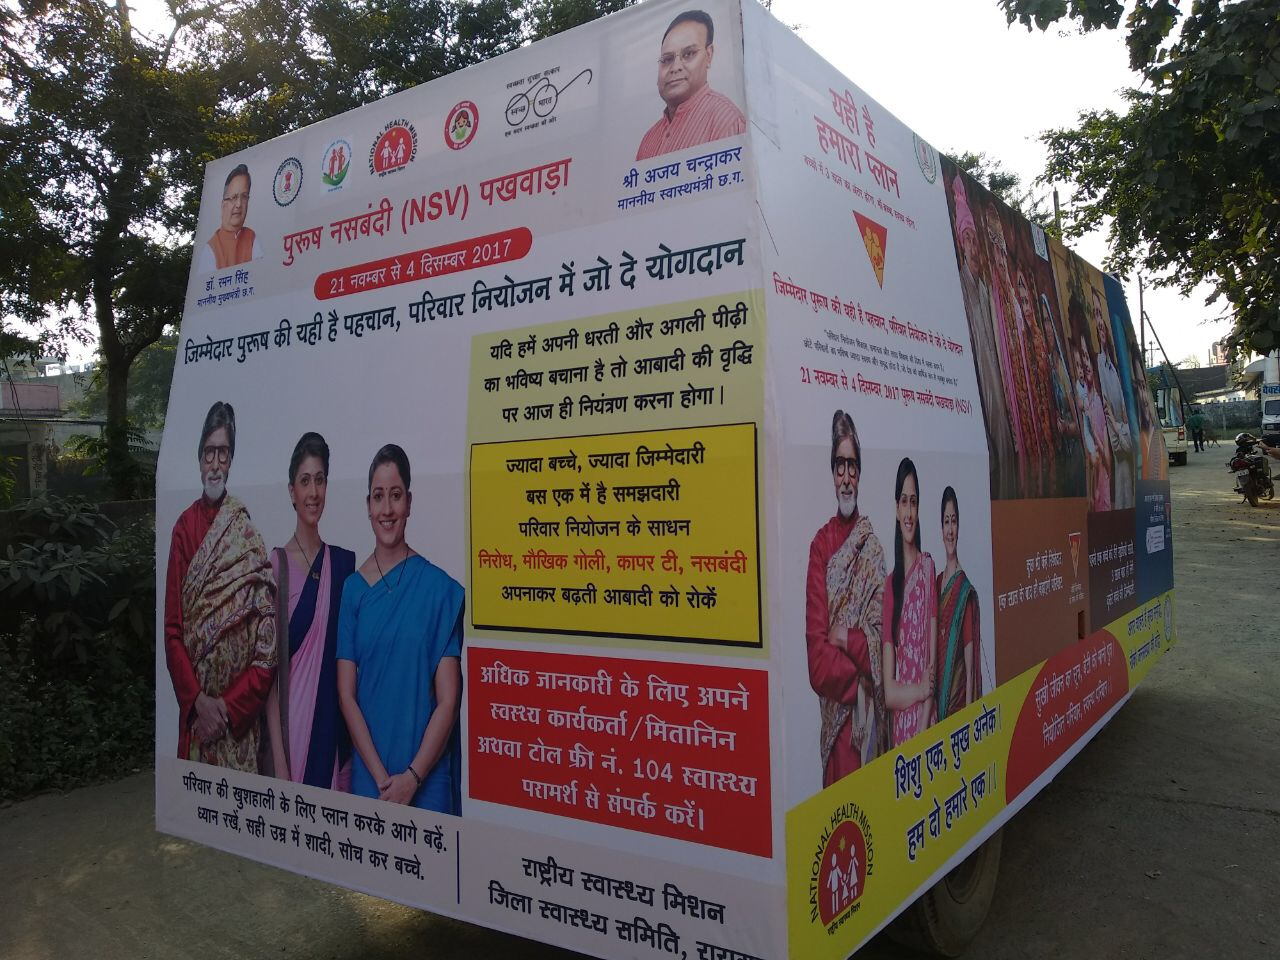 IEC activities are on full swing in Raigarh district as Chhattisgarh observes Vasectomy Fortnight.